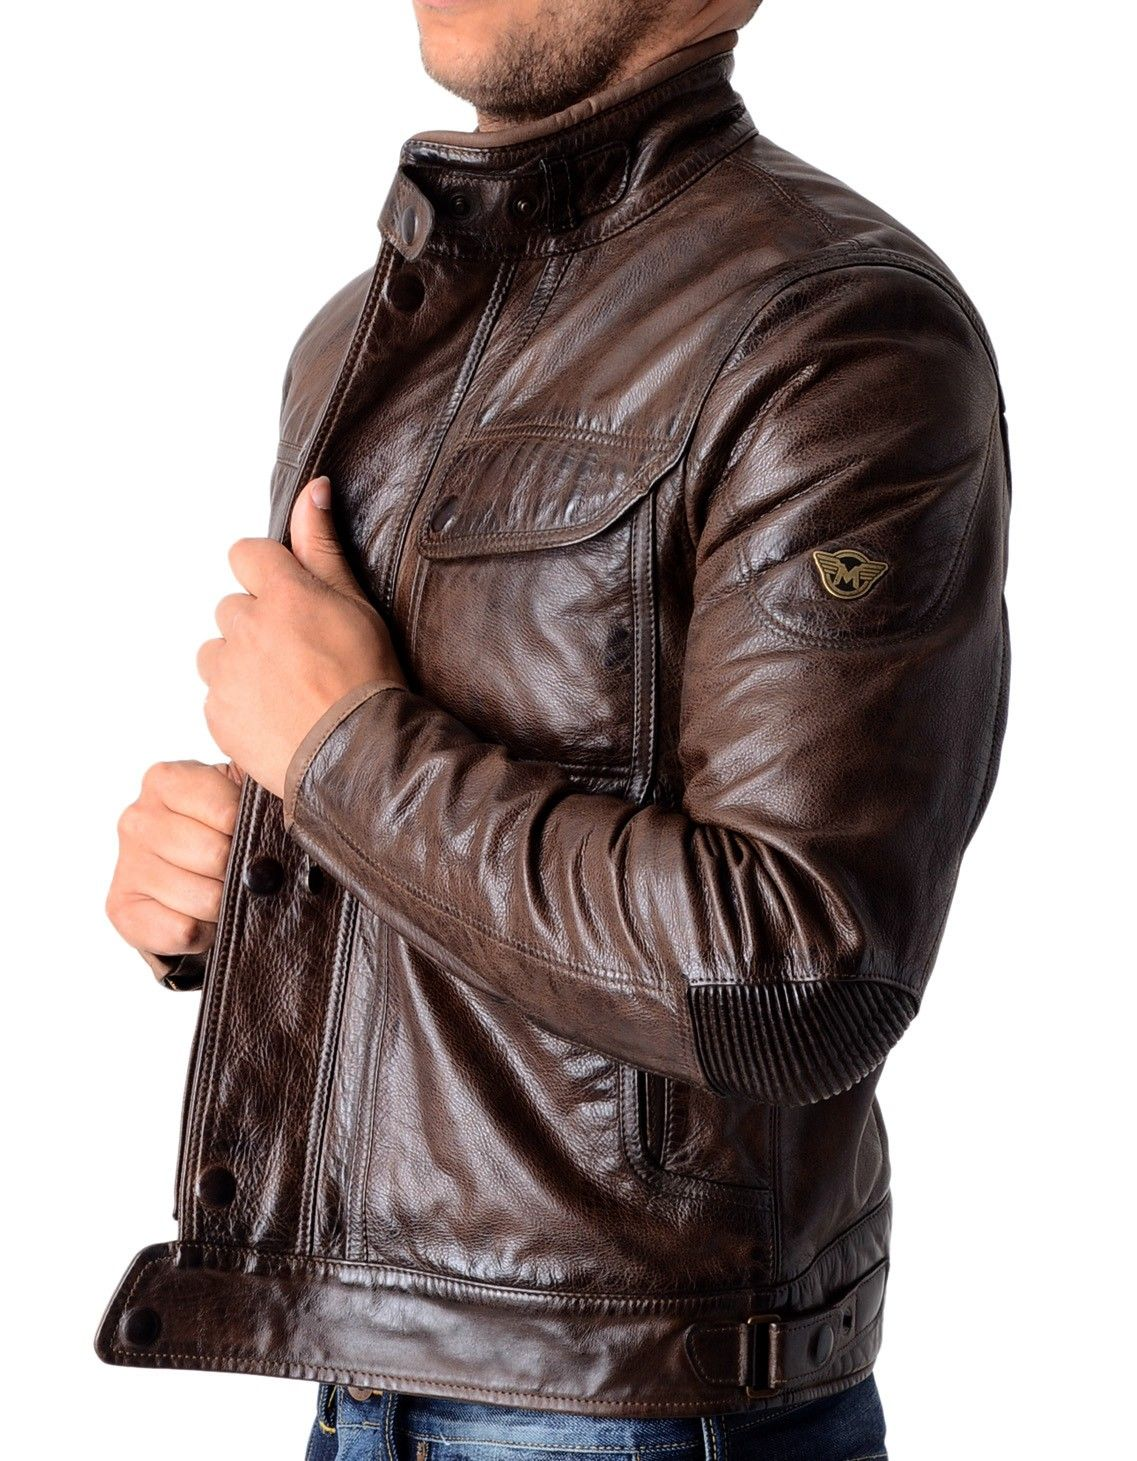 ac5aee6d0 Matchless - Kensington Leather Blouson - AntiqueBrown | Accent ...